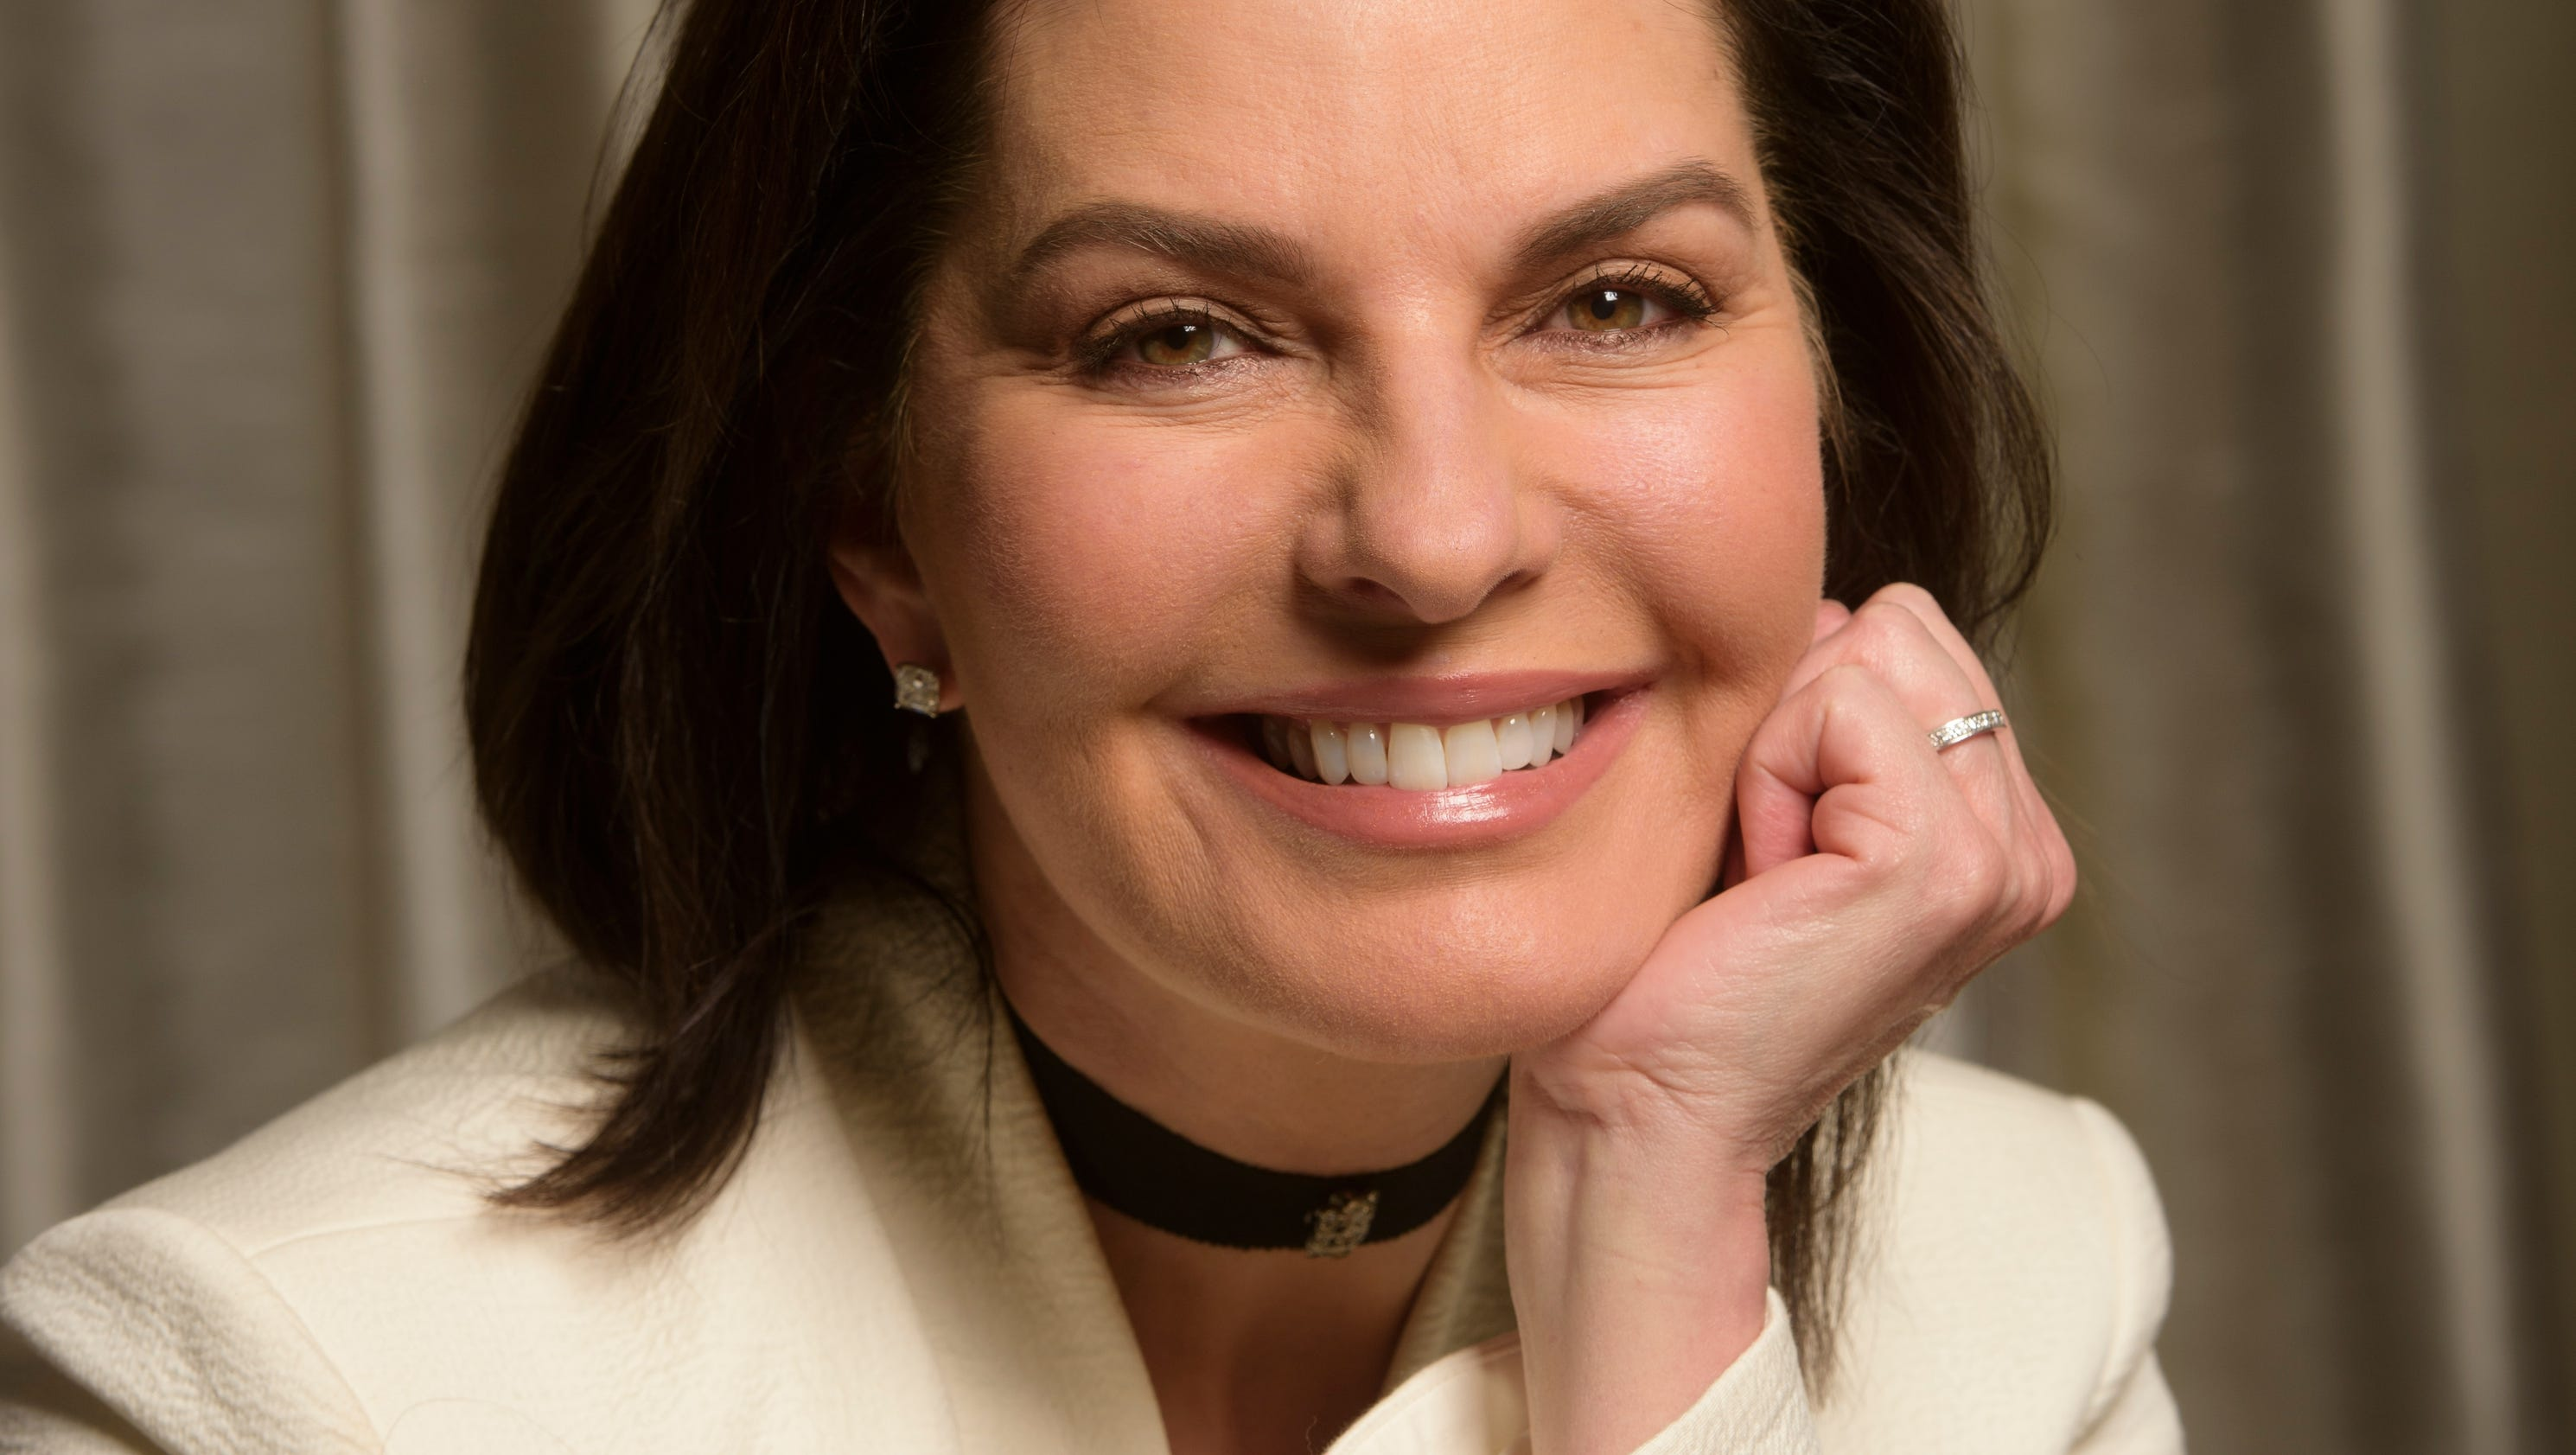 Sela ward takes the oval office in independence day sequel